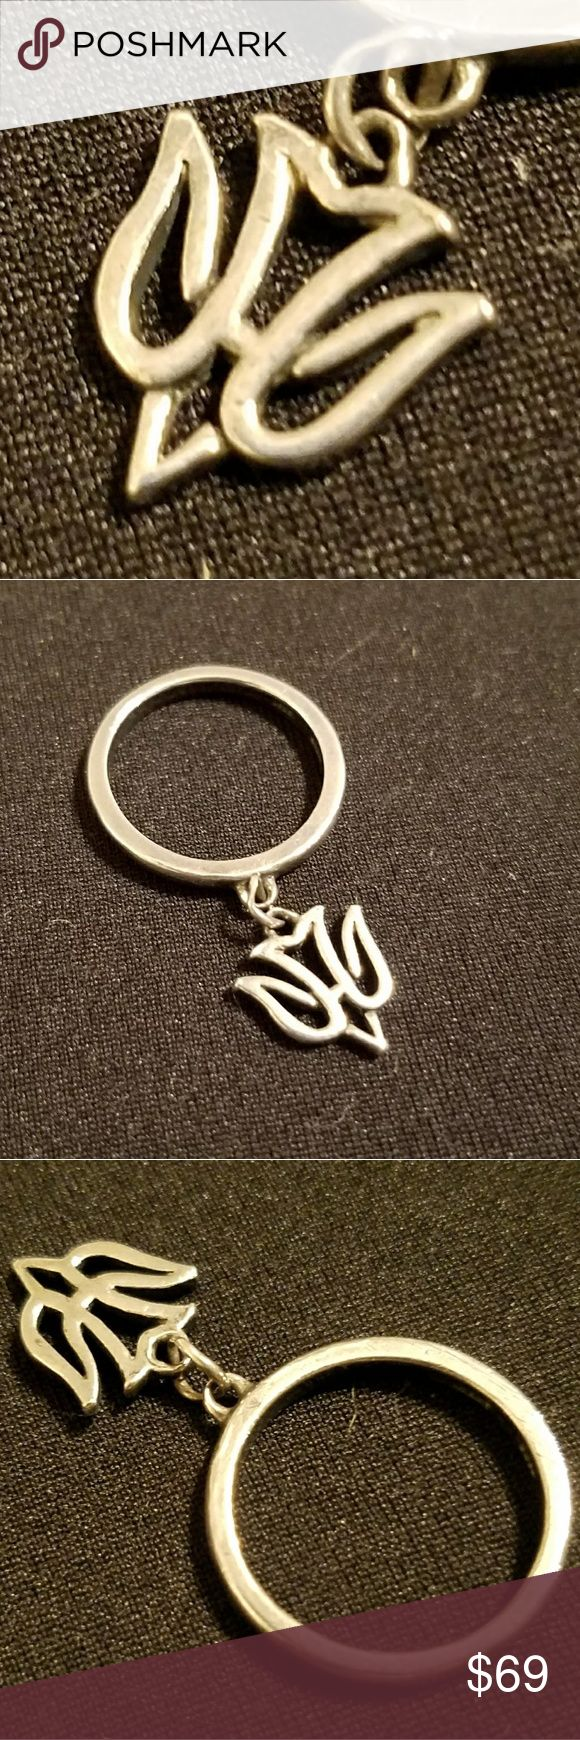 🛍 James Avery ring Retired in EUC Desending dove dangle charm ring. Charm has little to no wear. Great addition for any collector of James Avery. SIZE 5. James Avery Jewelry Rings